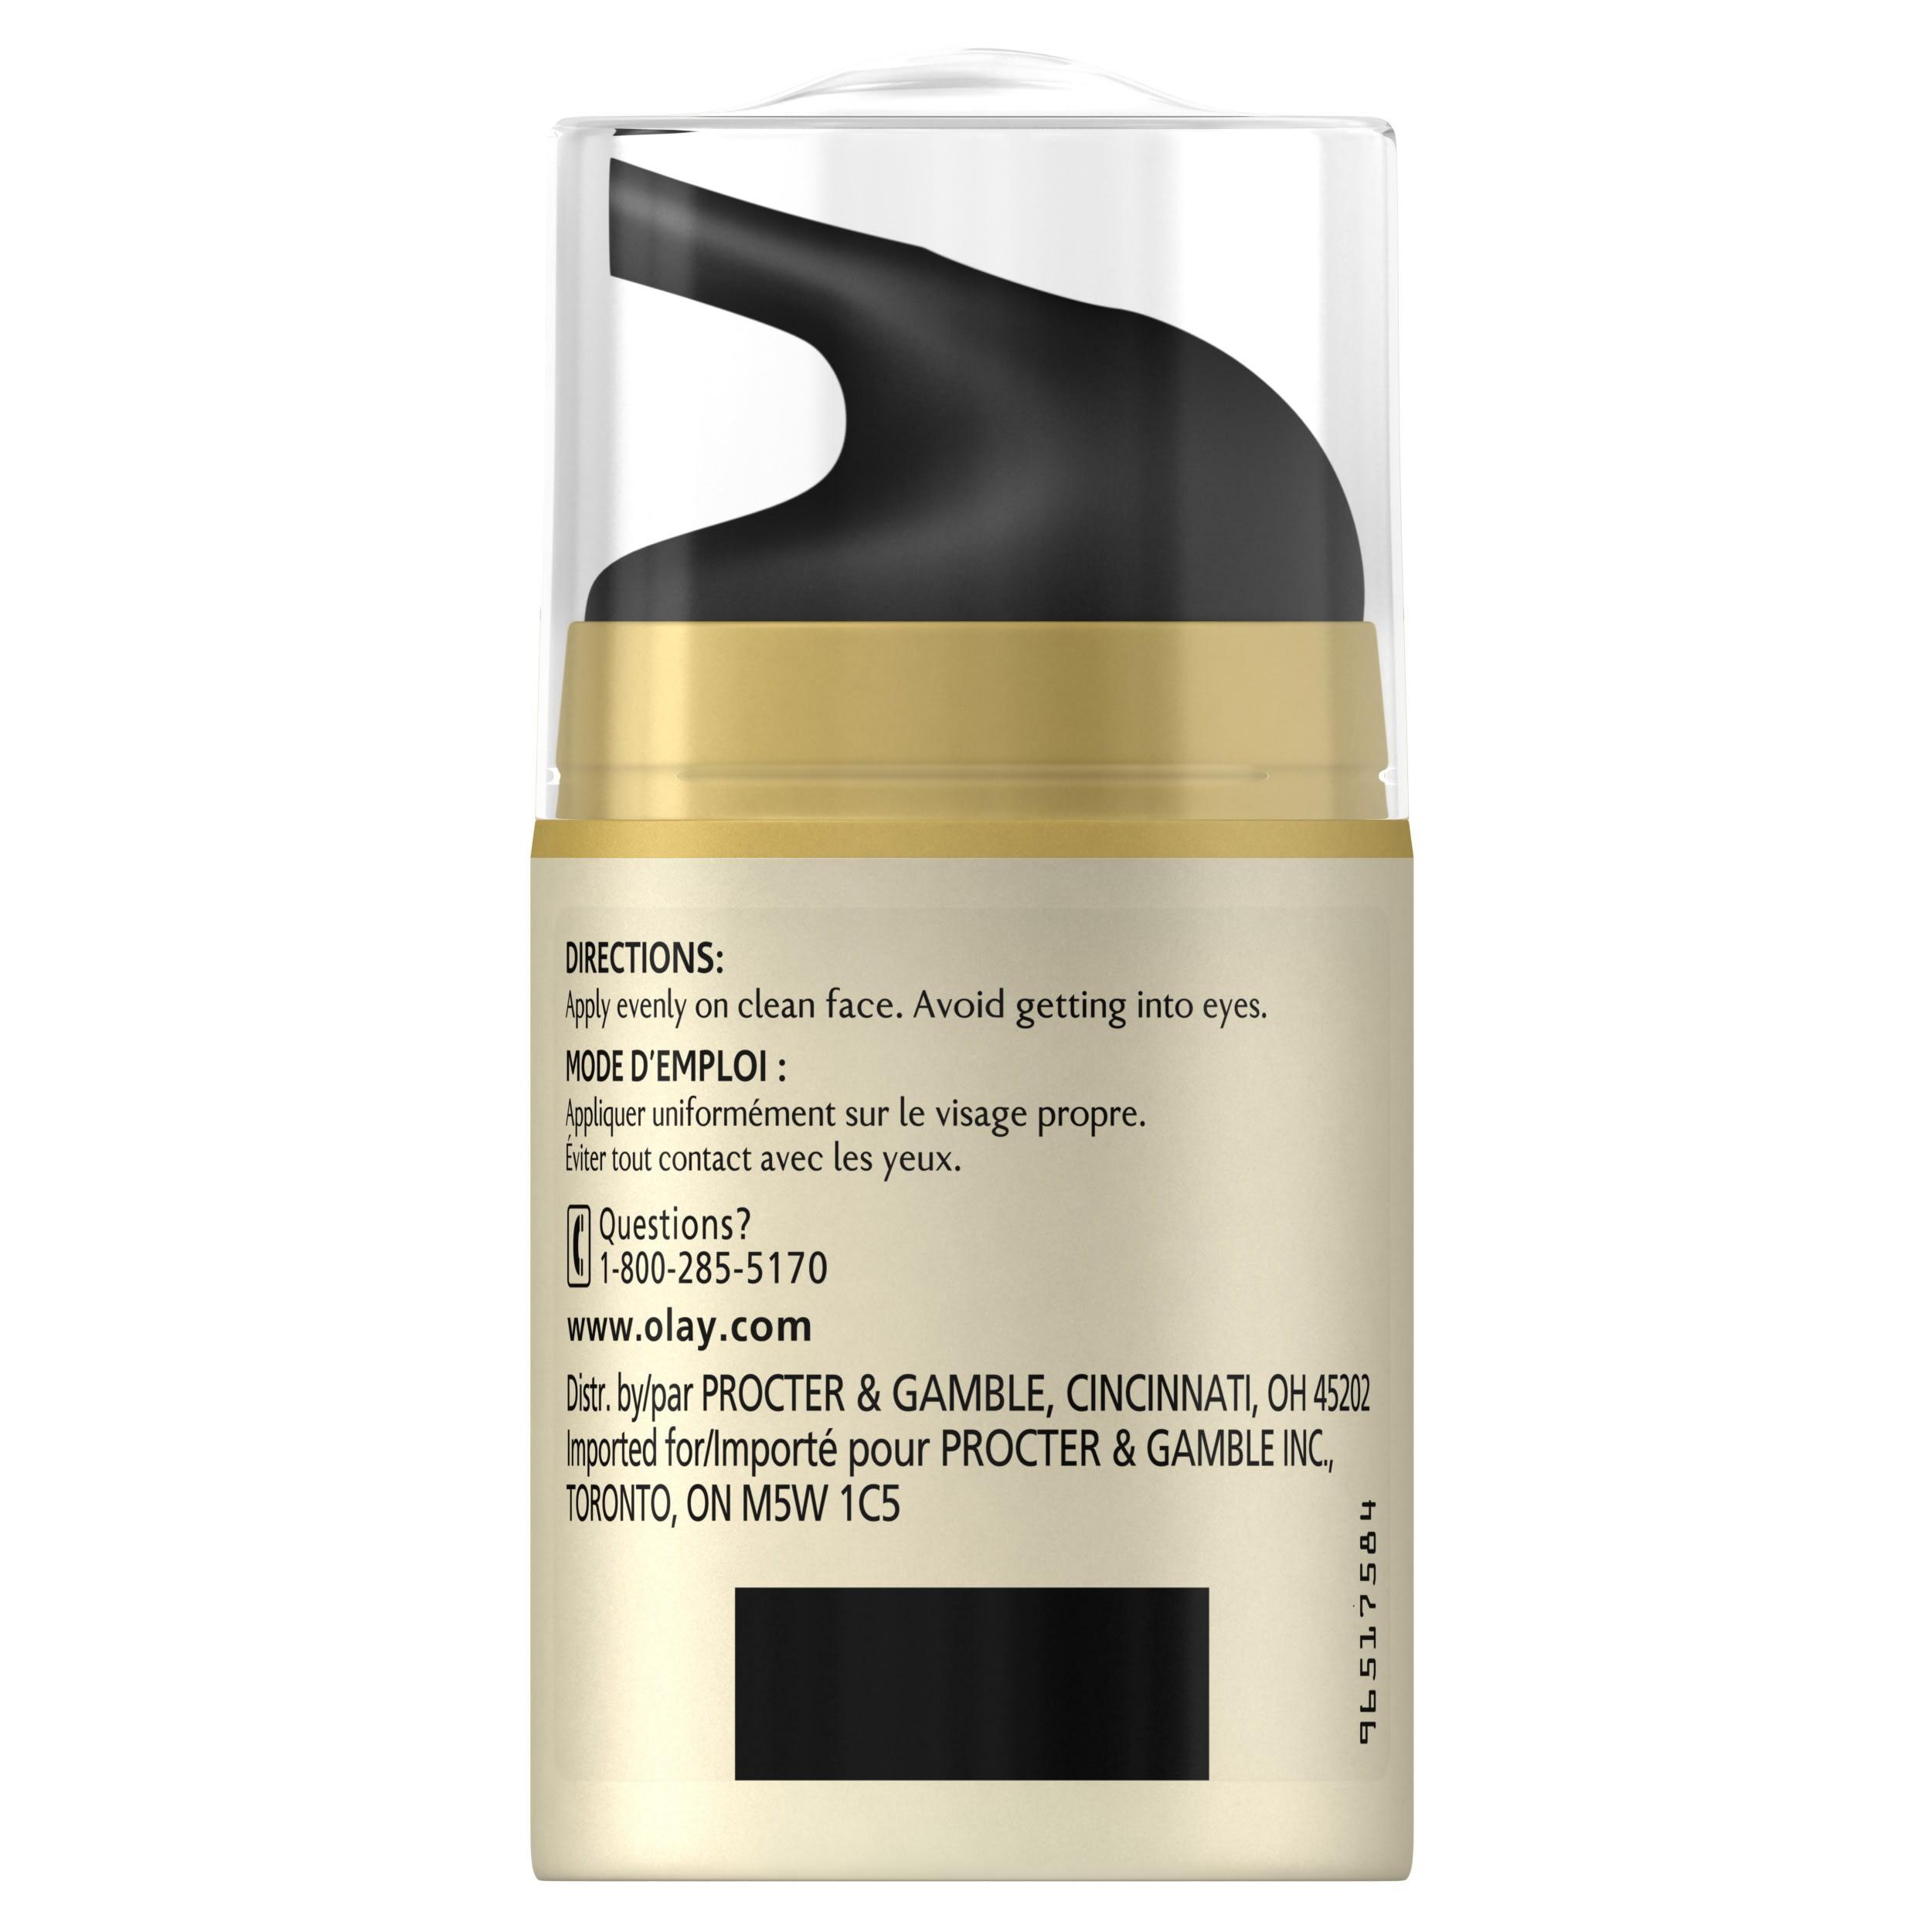 Olay CC Cream Total Effects Daily Moisturizer Touch of Foundation 4